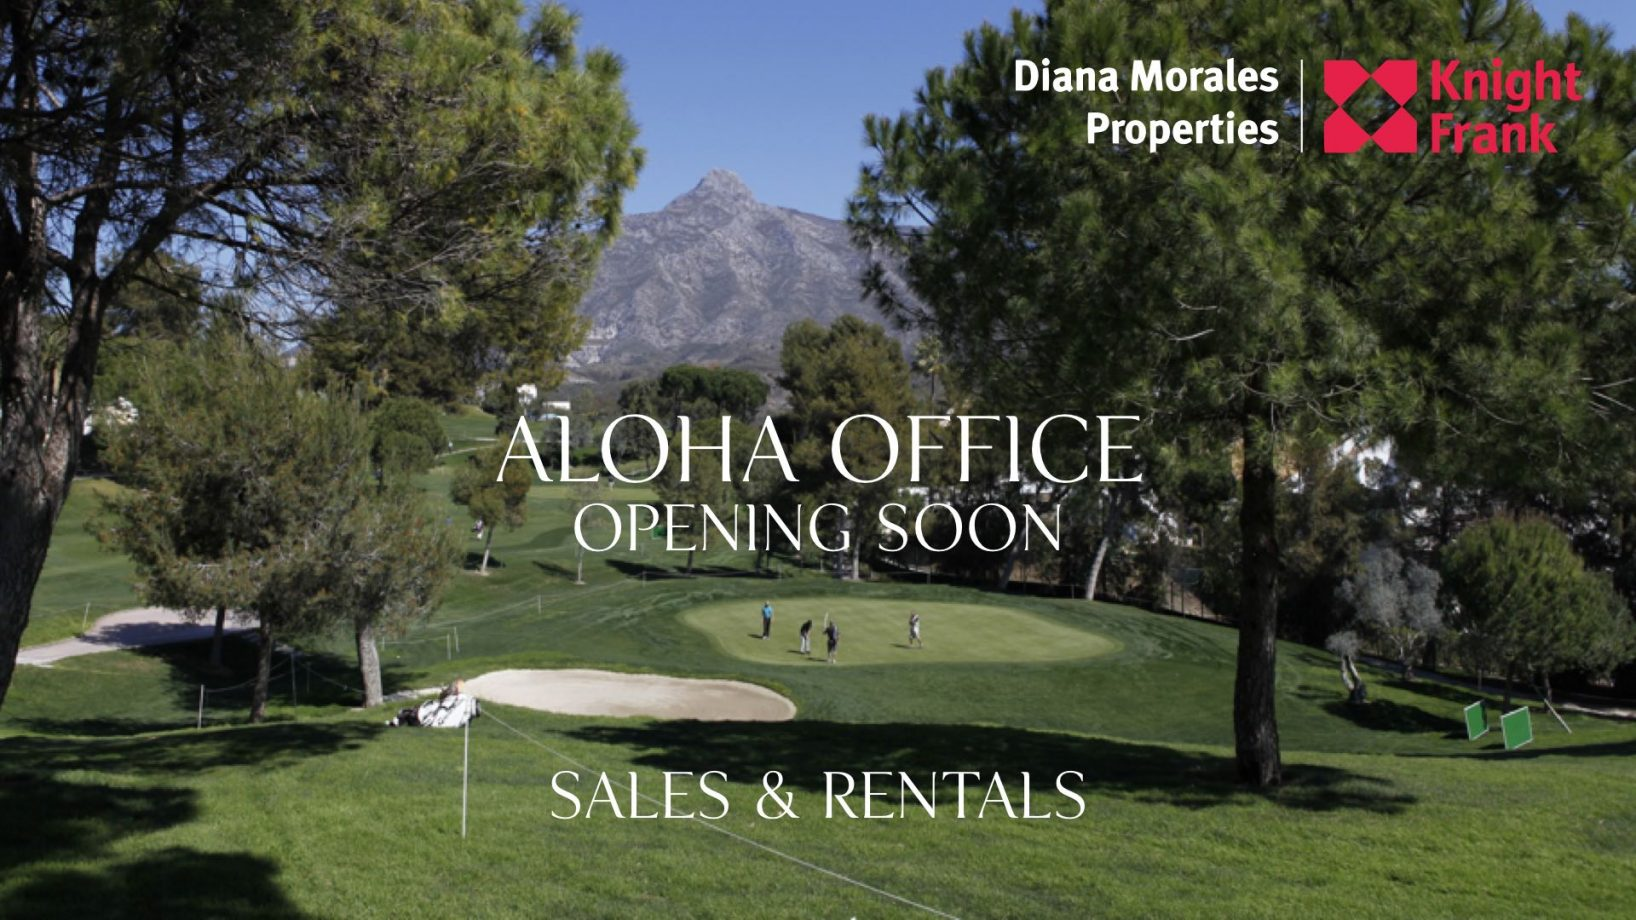 Diana Morales Properties | Knight Frank expands into new Marbella office